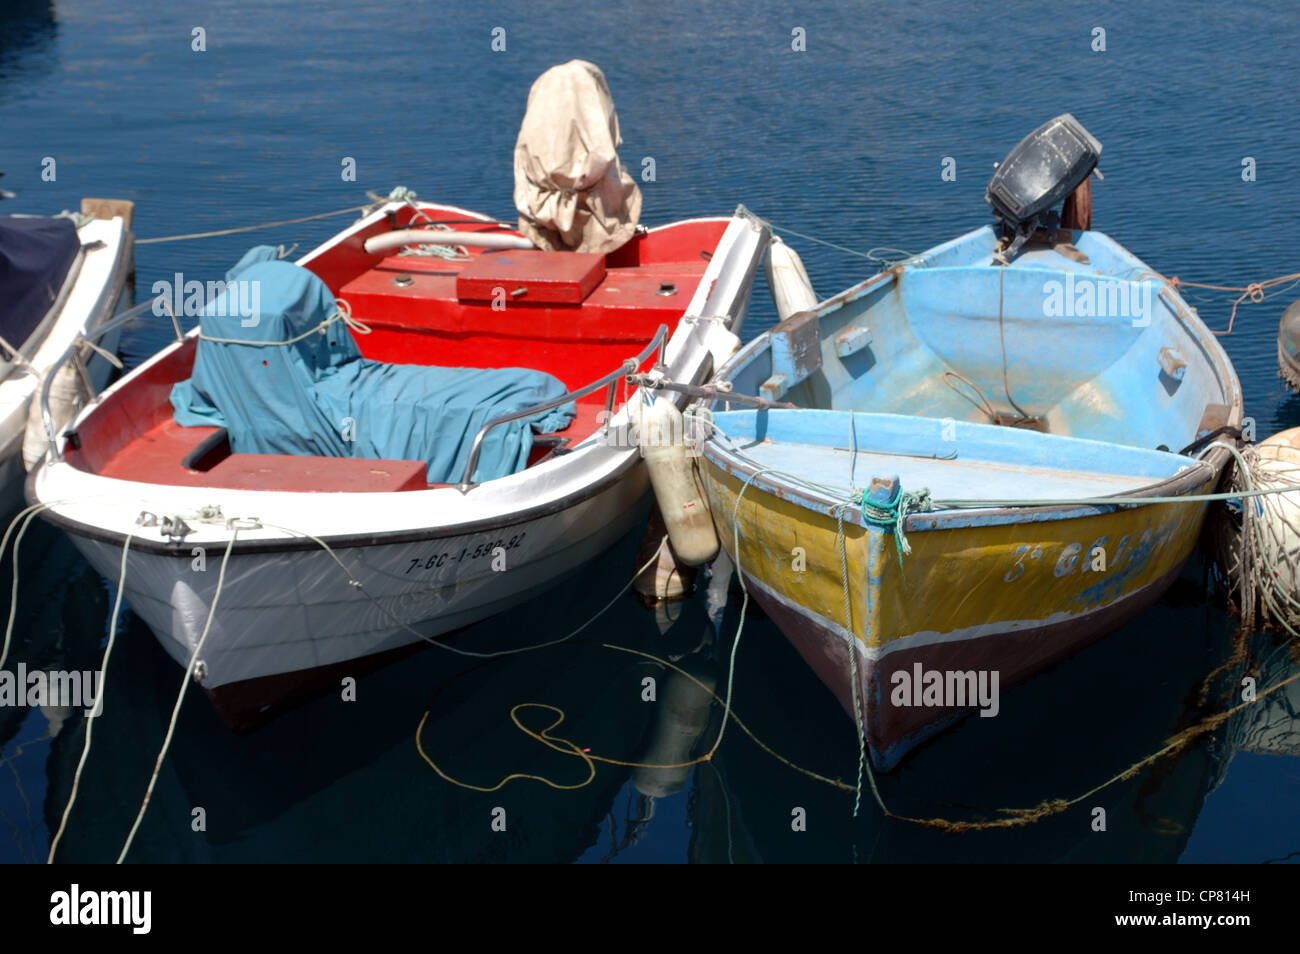 Boats in the harbour at Puerto Mogan, Gran Canaria - Stock Image